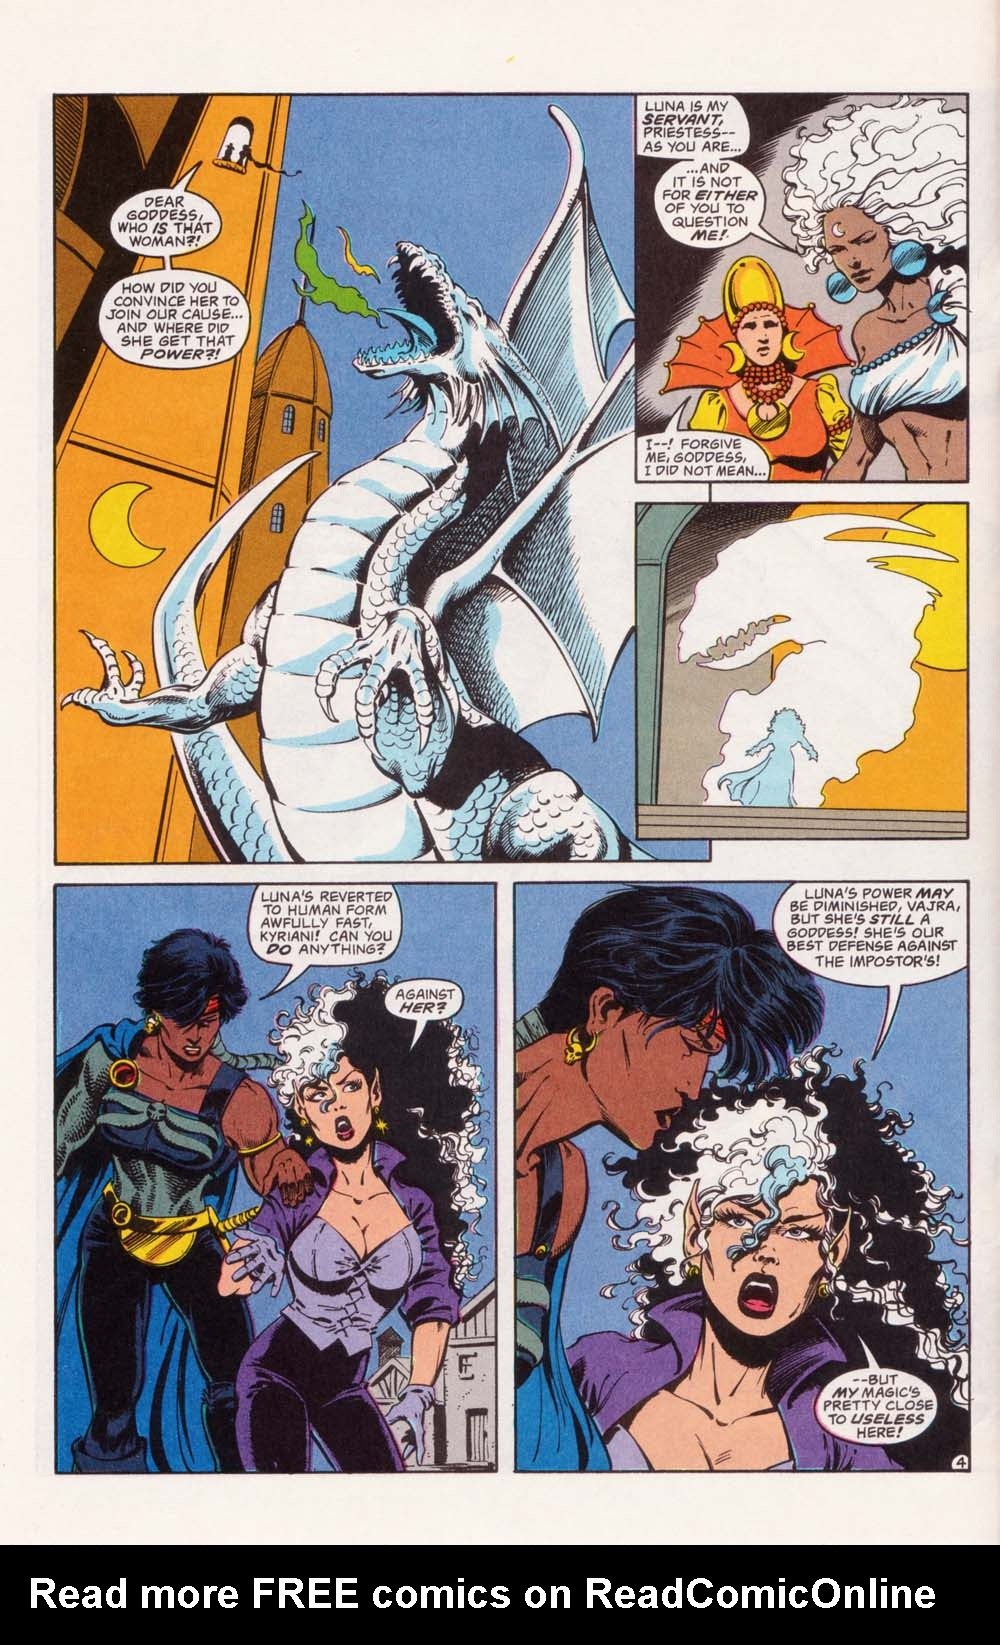 Read online Advanced Dungeons & Dragons comic -  Issue #22 - 4